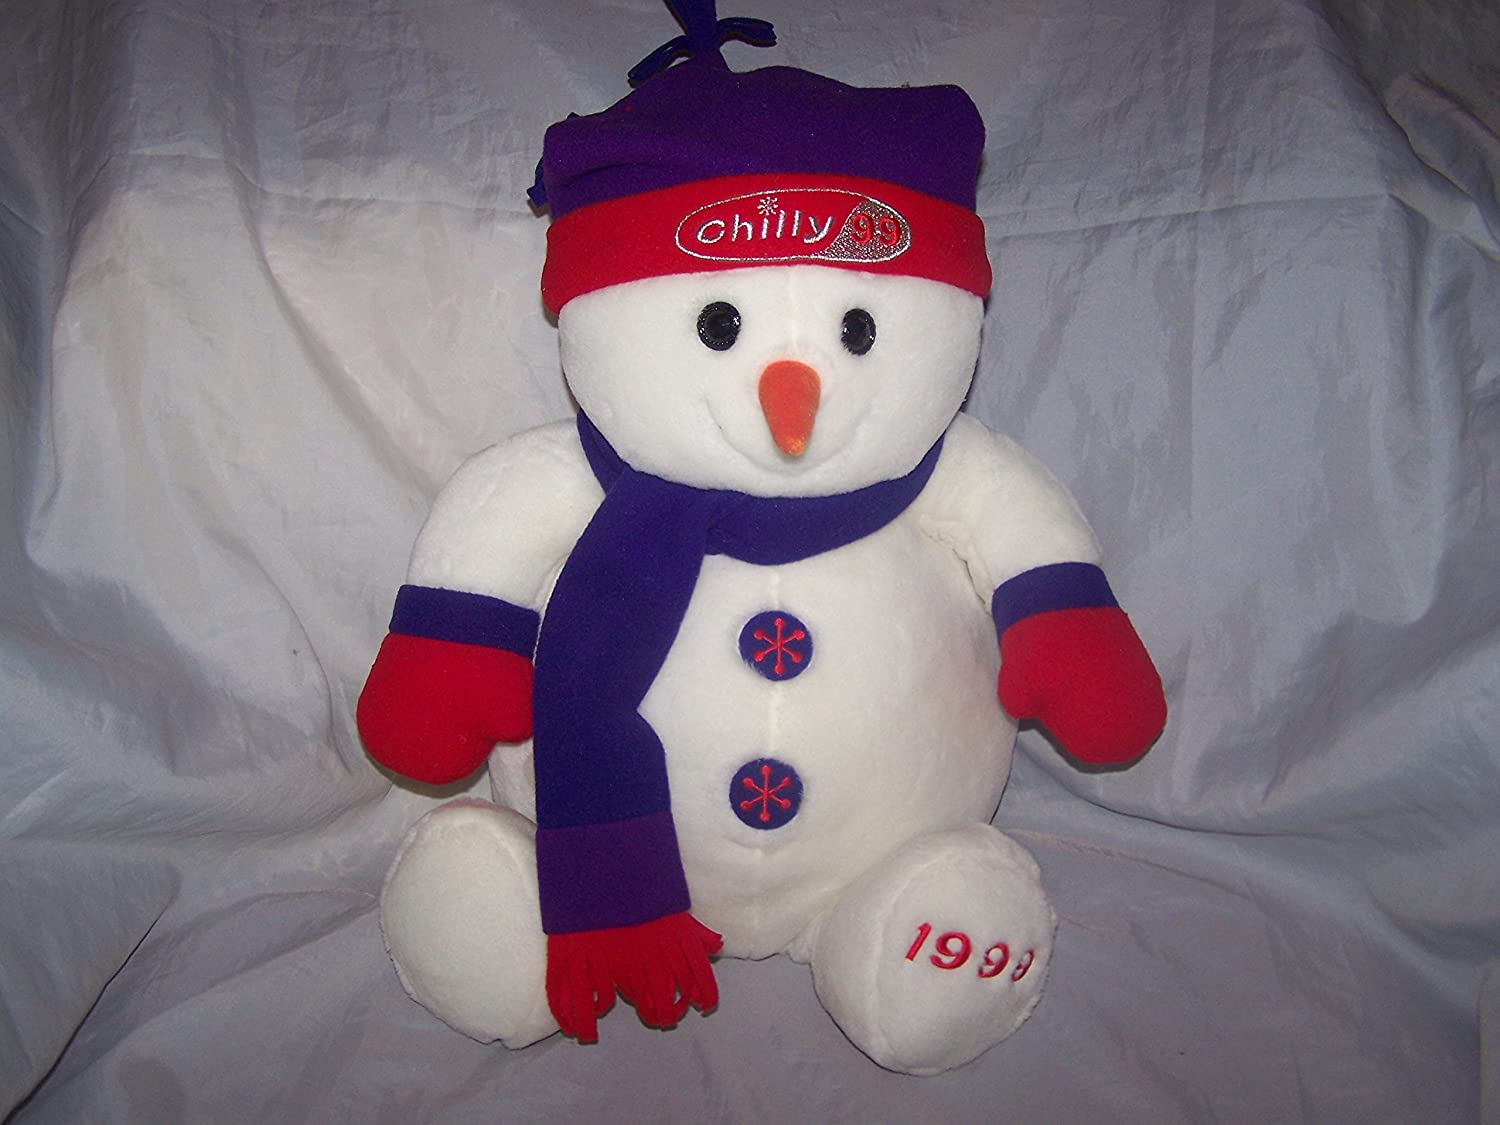 48f14a3ed Chilly the Snowman large soft toy.: Amazon.co.uk: Toys & Games